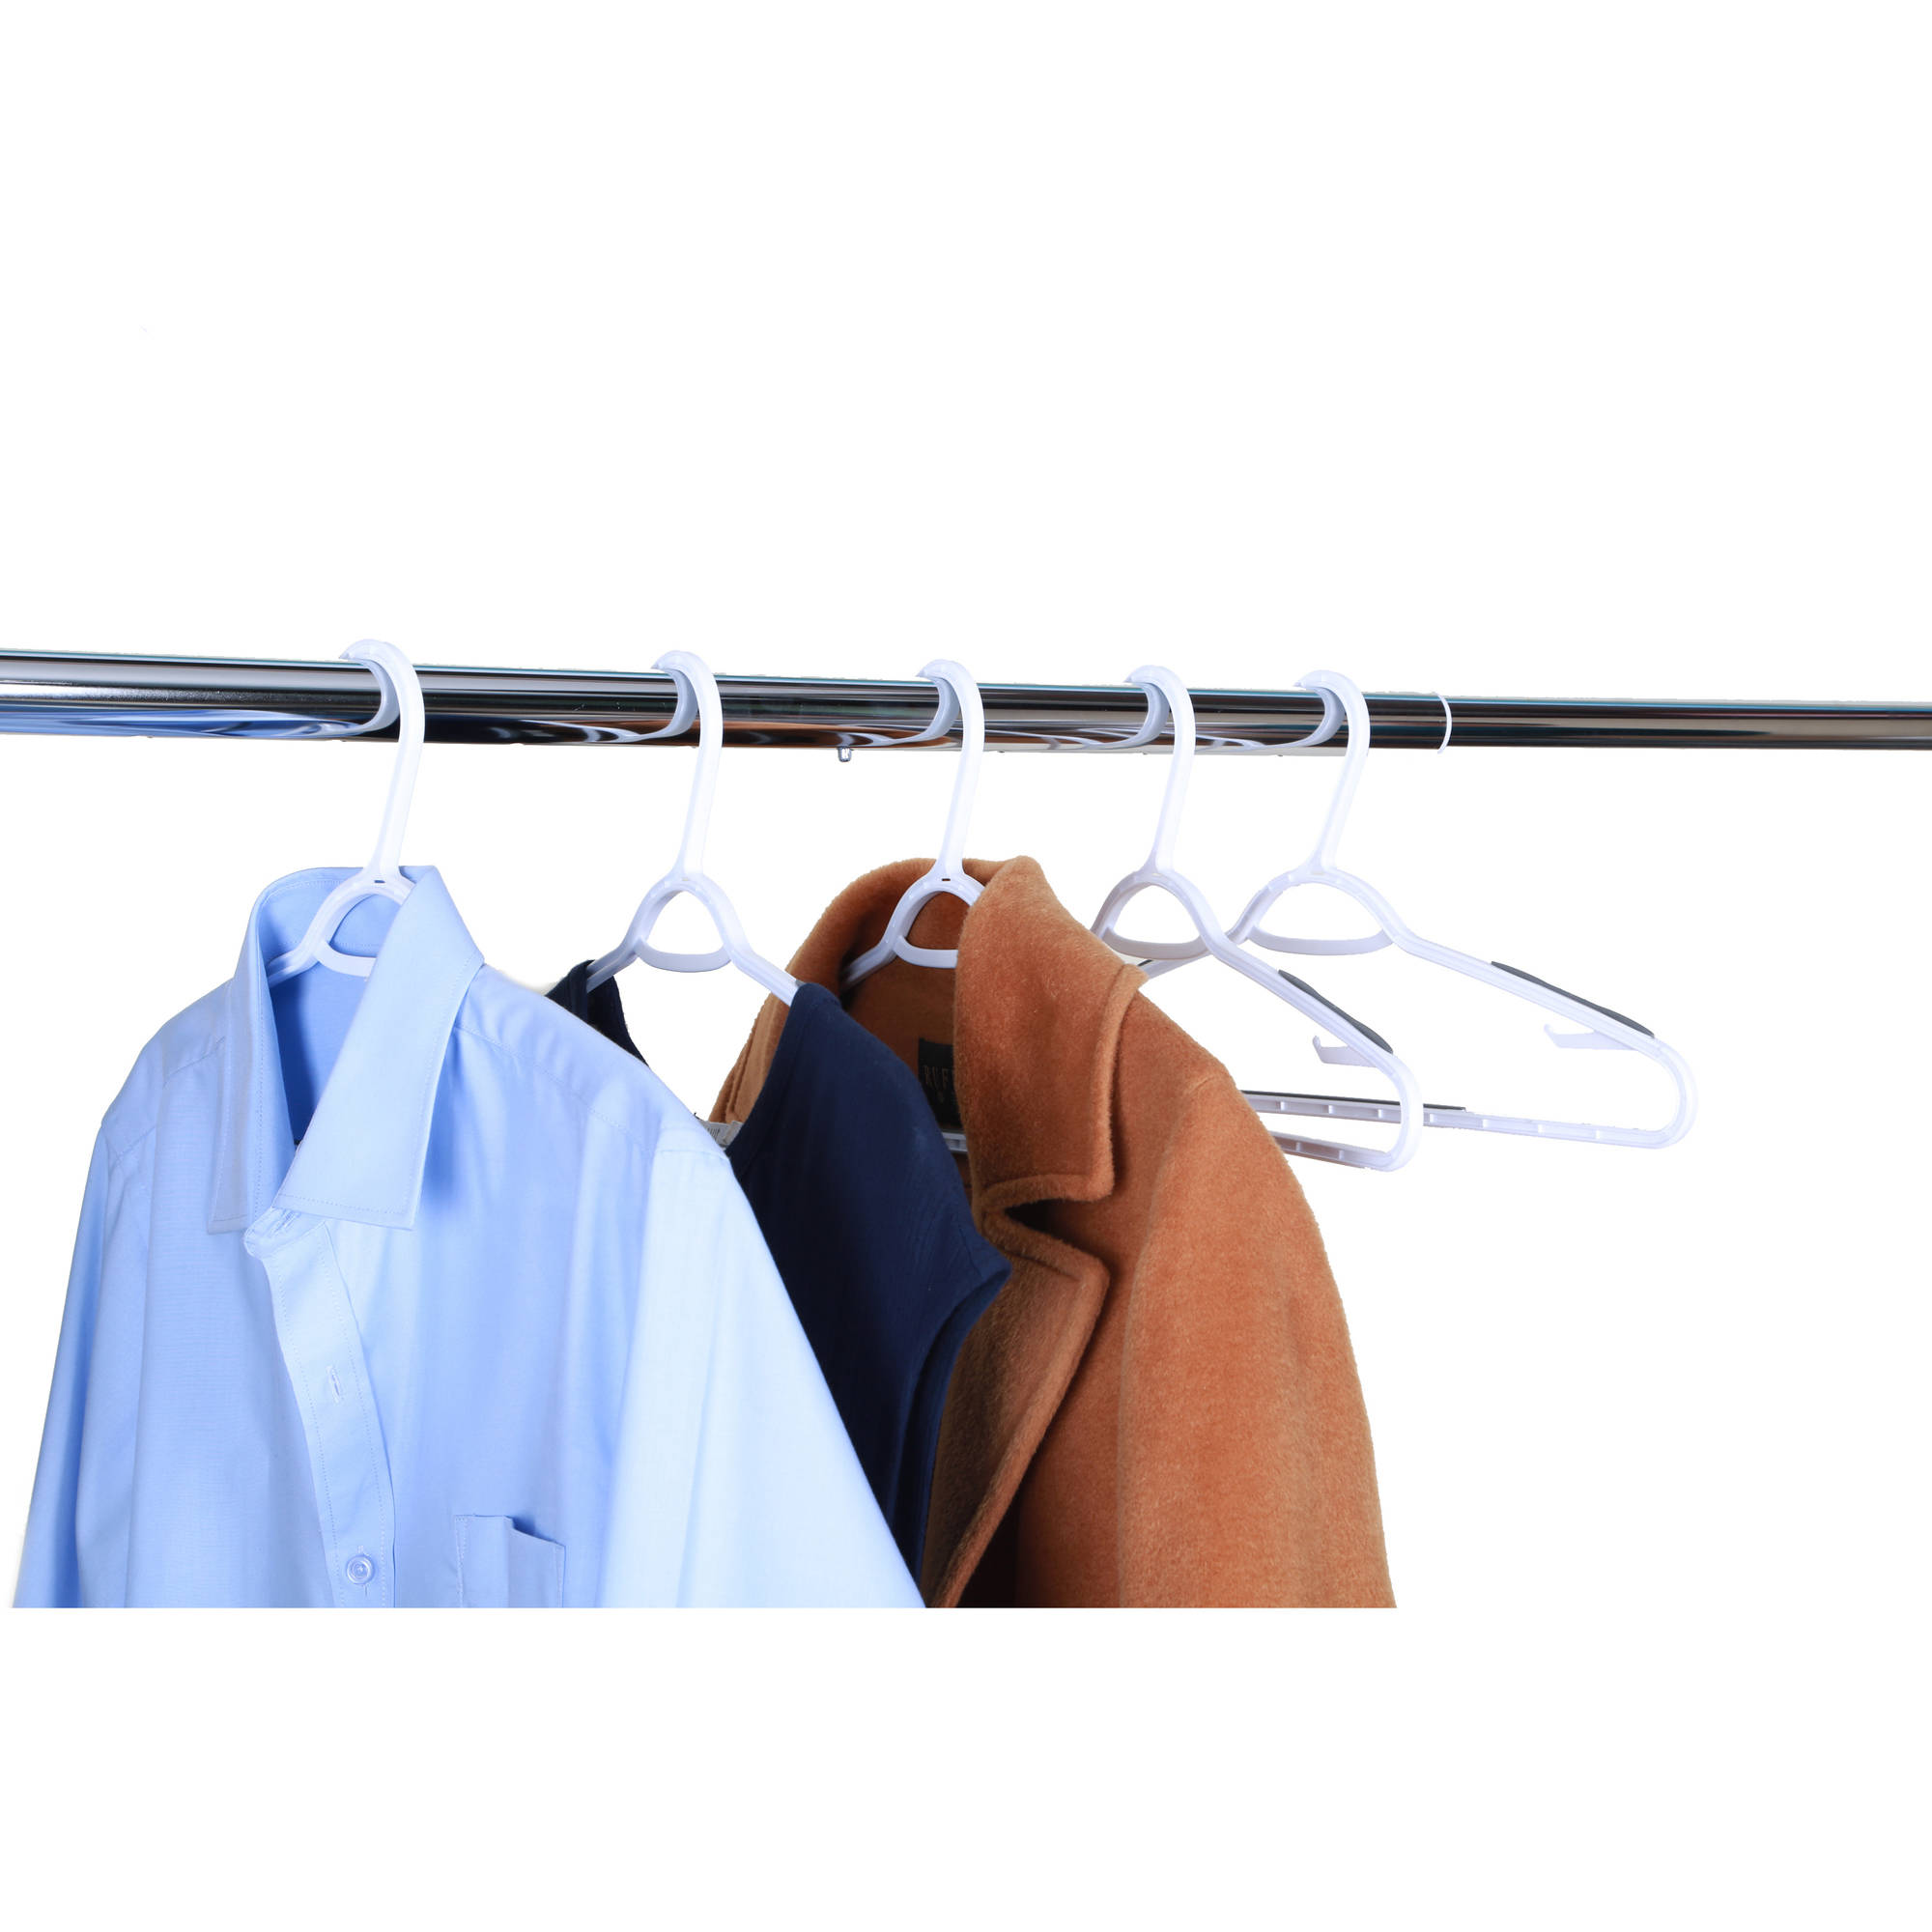 Mainstays Non-Slip Hangers White & Grey, 30-Pack